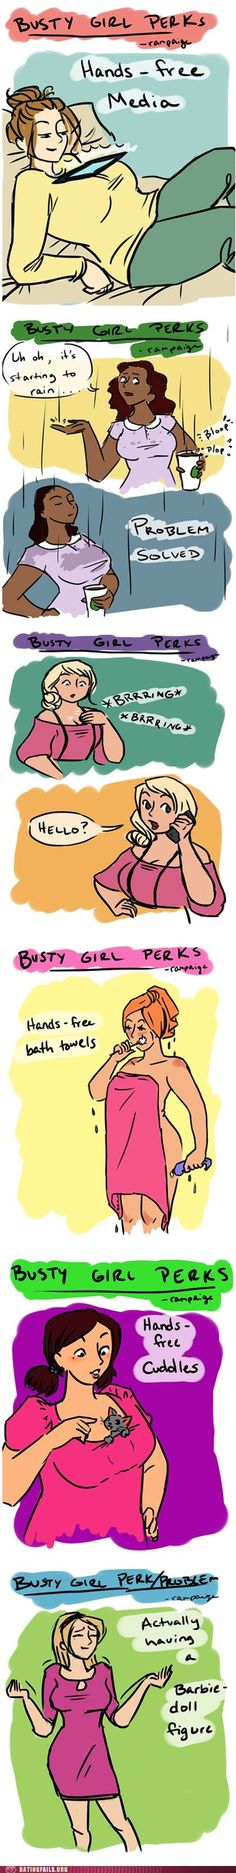 rampaige's Busty Girl Perks. I pinned their small bust perks strip earlier, so I'm just being fair.